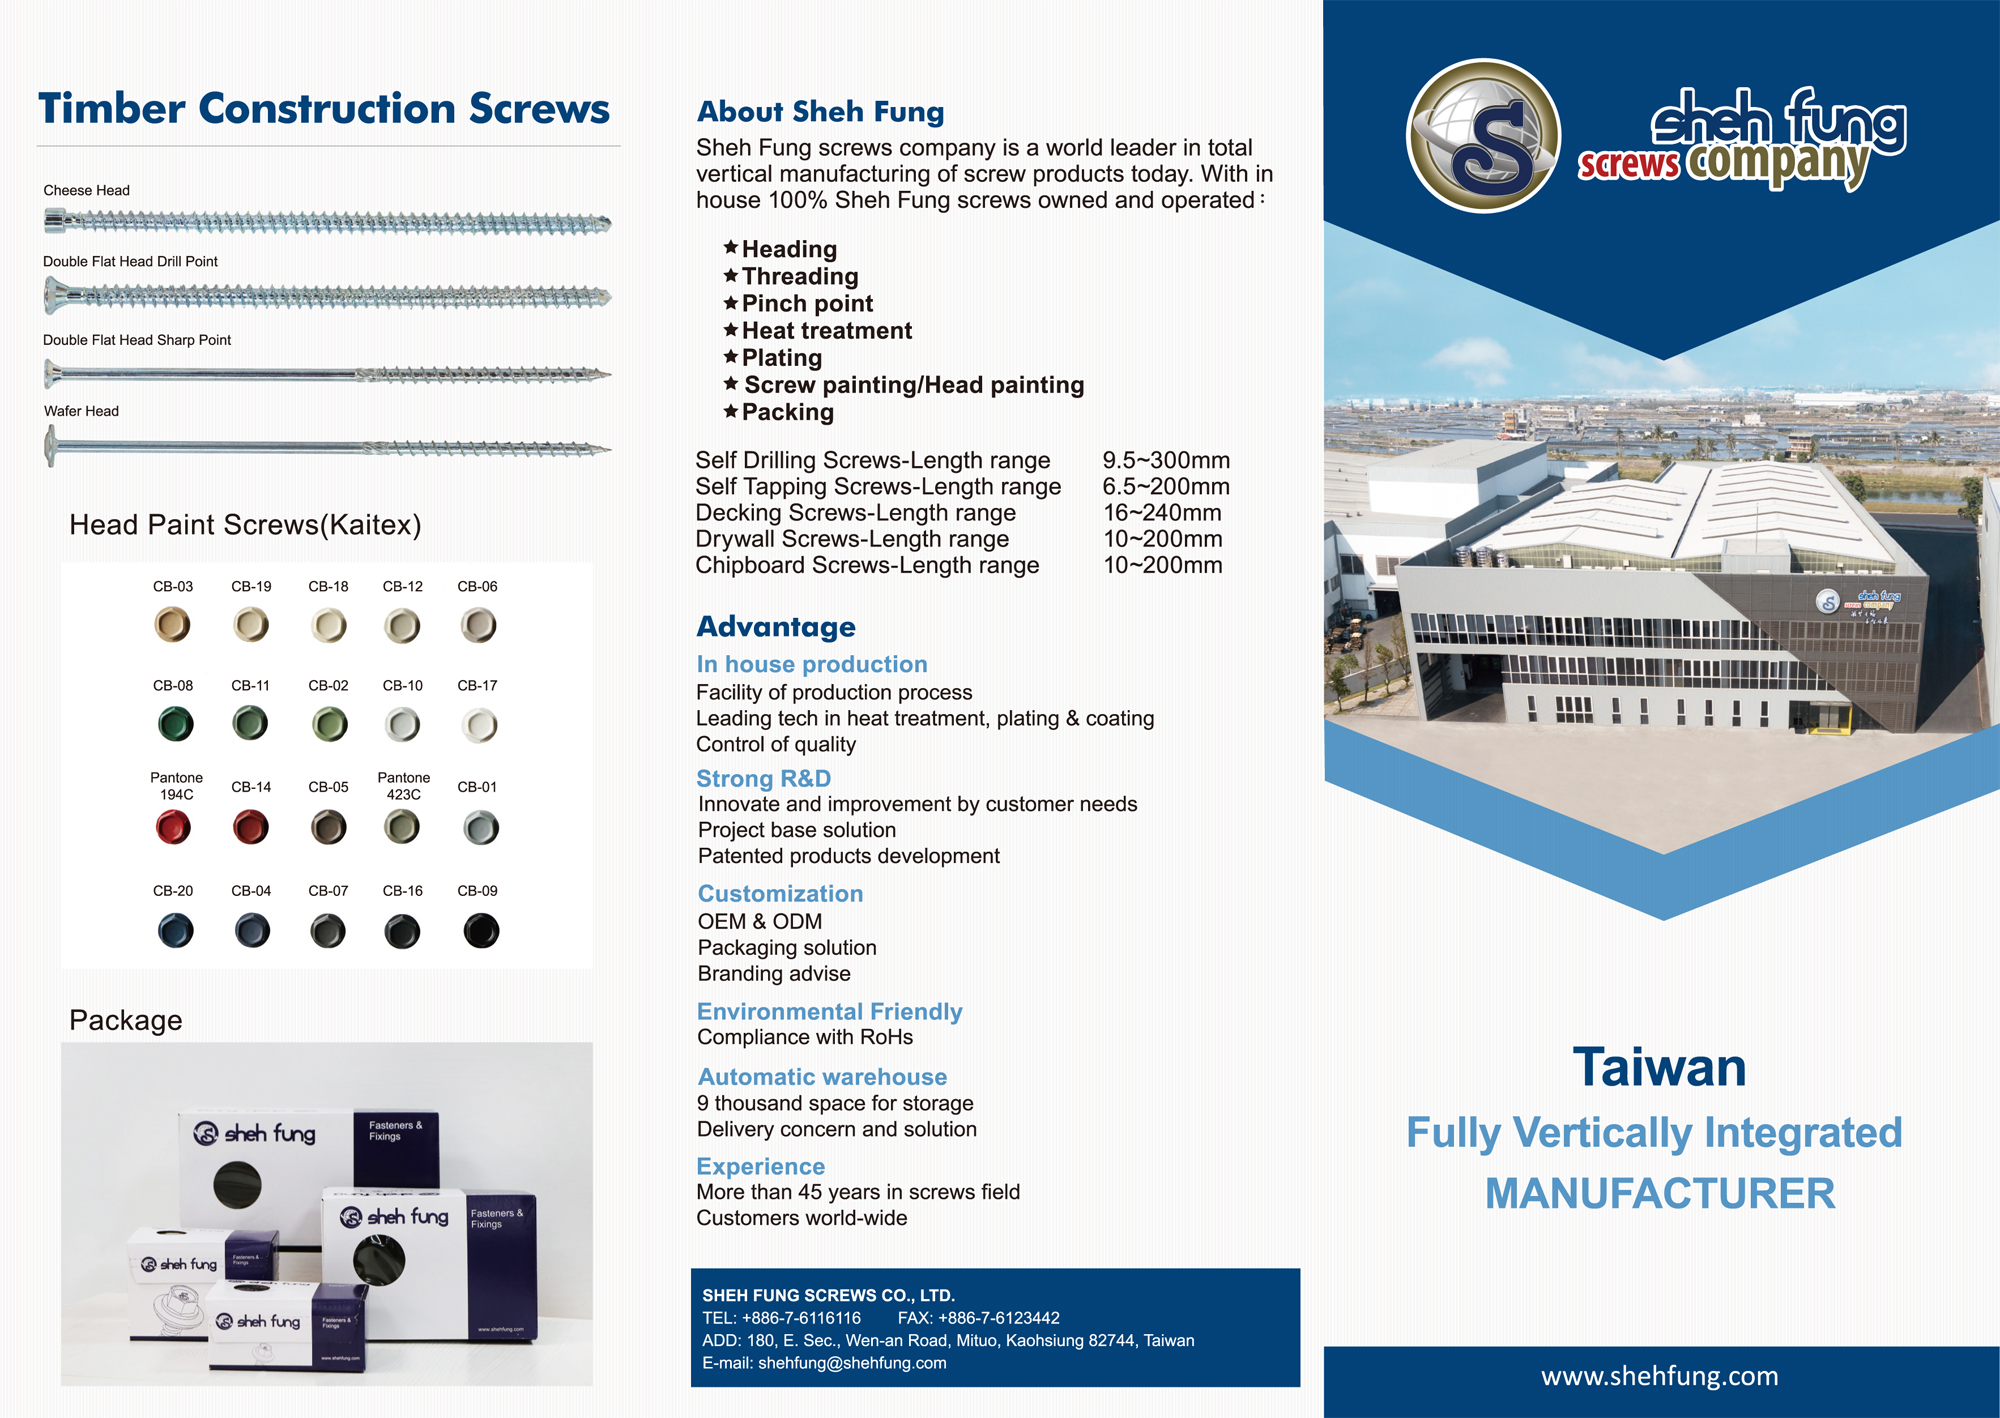 SHEH FUNG SCREWS CO., LTD. _Online Catalogues